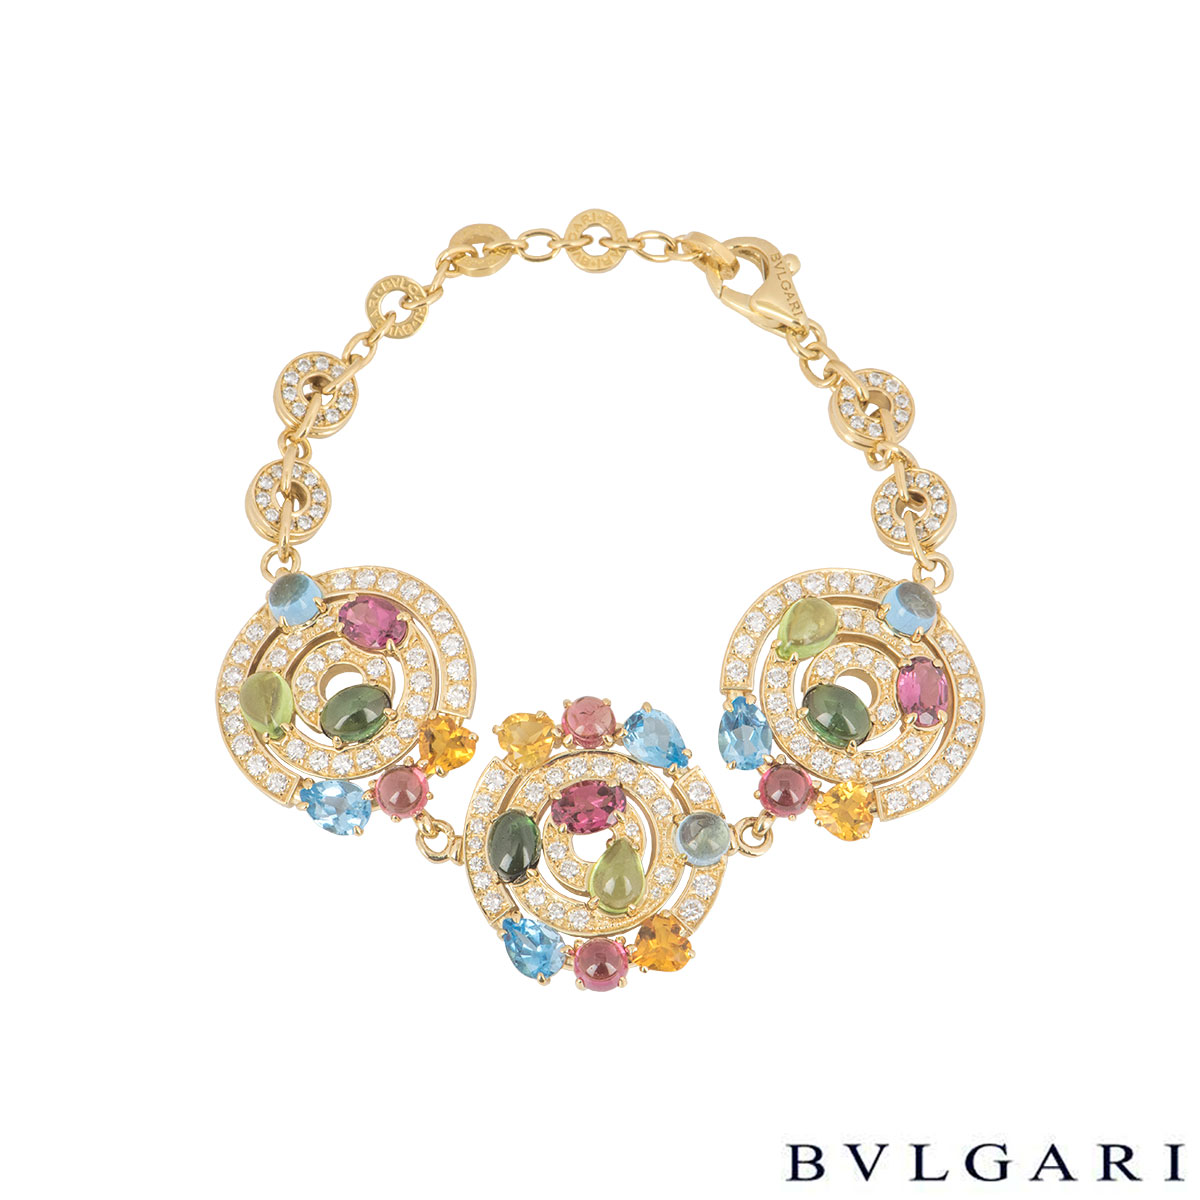 Bvlgari Yellow Gold Diamond And Multi-Gemstone Astrale Bracelet